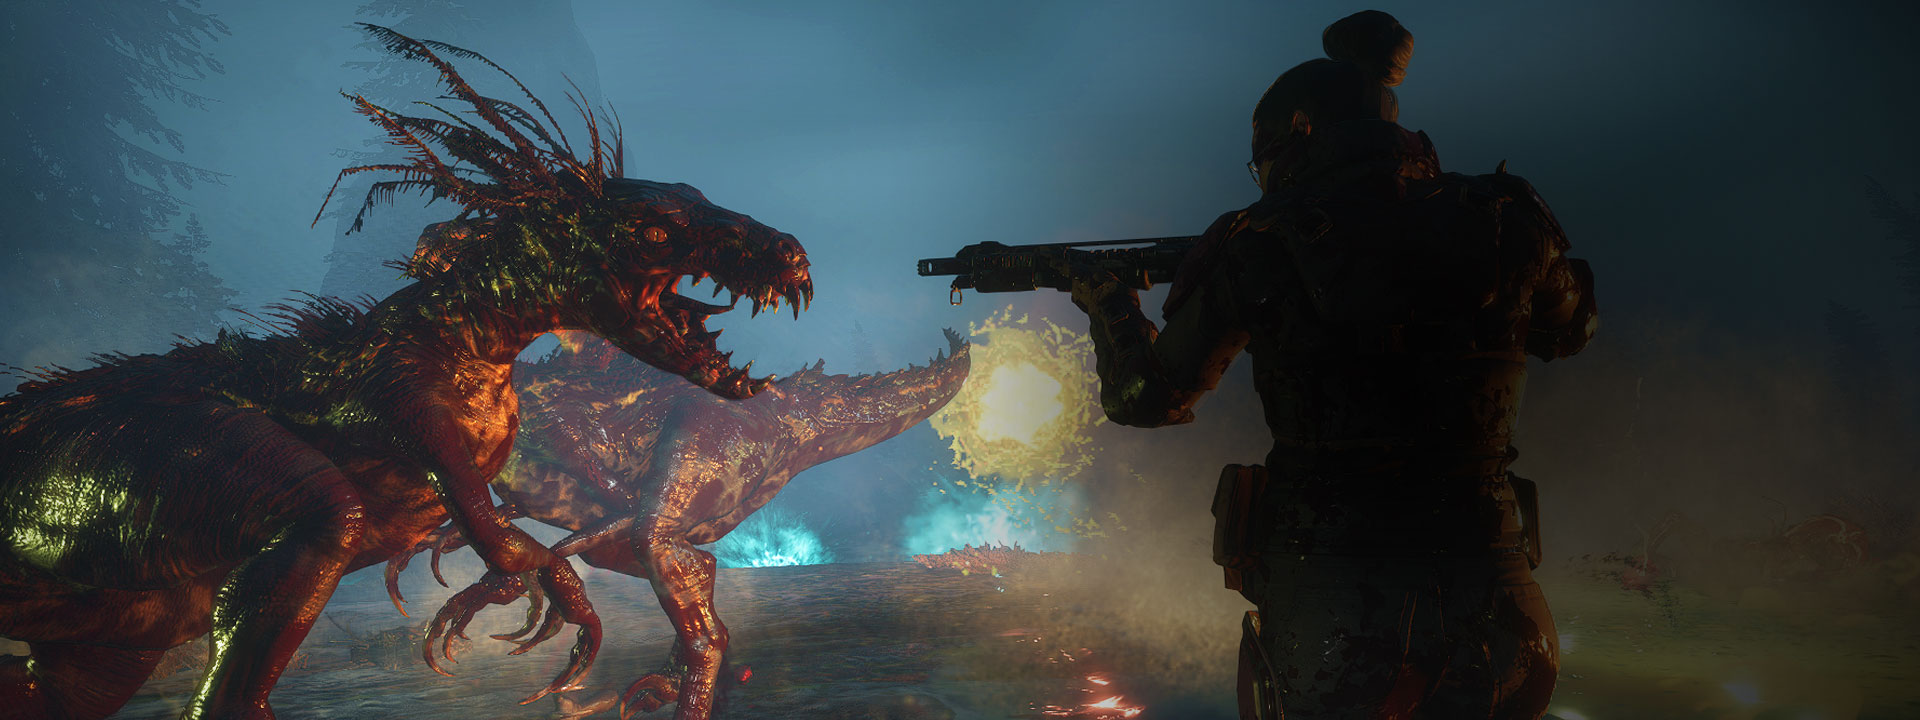 A character points their gun directly at a mutant dinosaur.